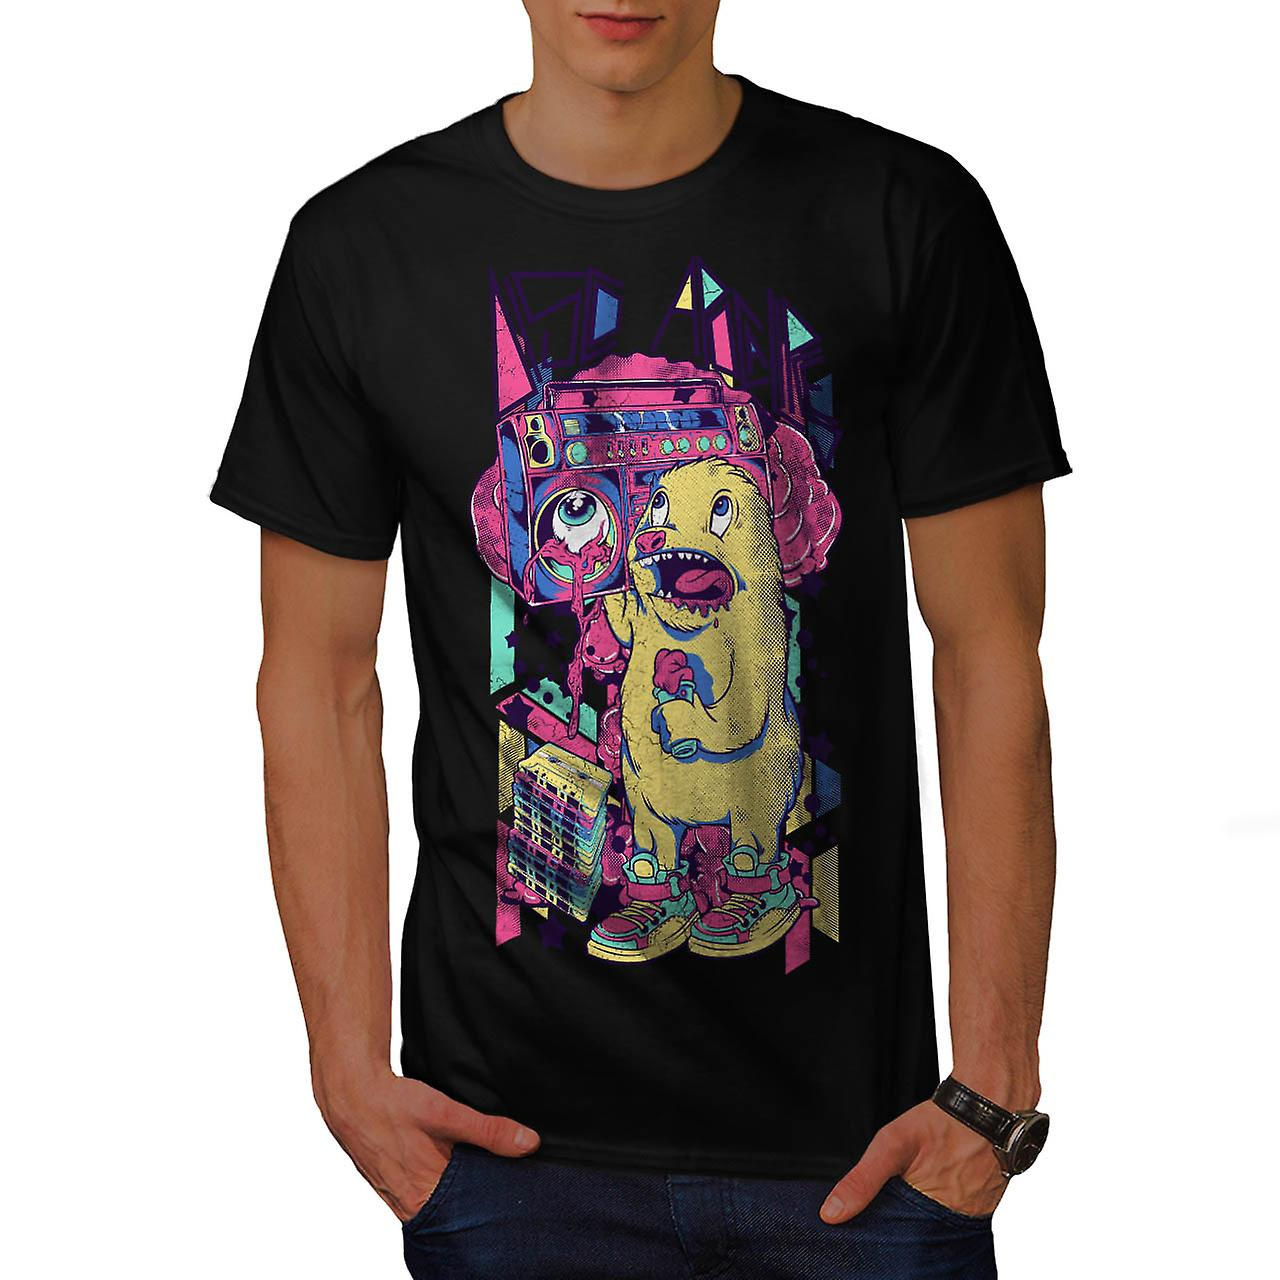 Furry Animal Alien Comic Sound Männer T-shirt schwarz | Wellcoda